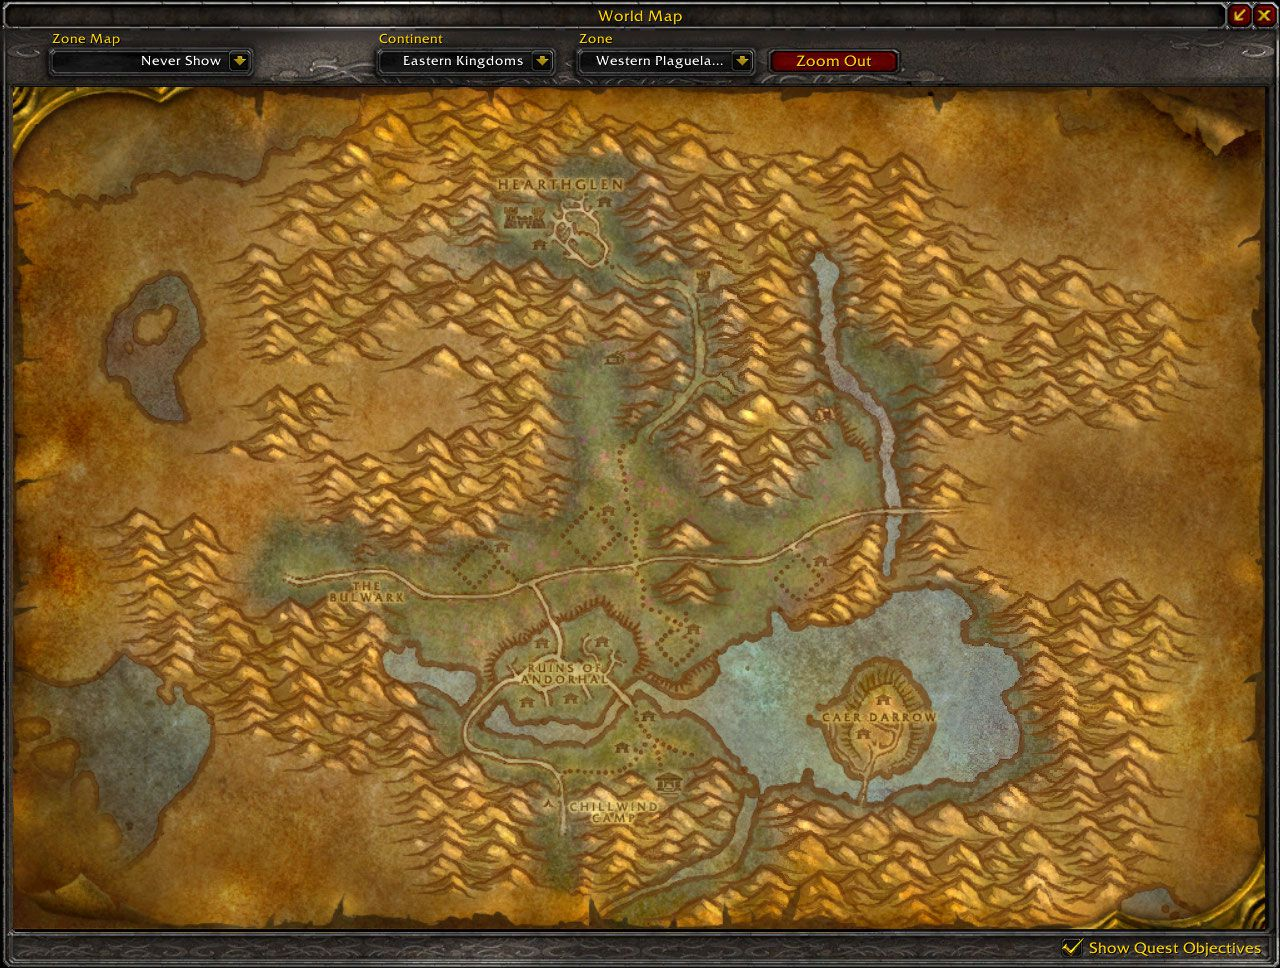 Western Plaguelands map wow screenshot